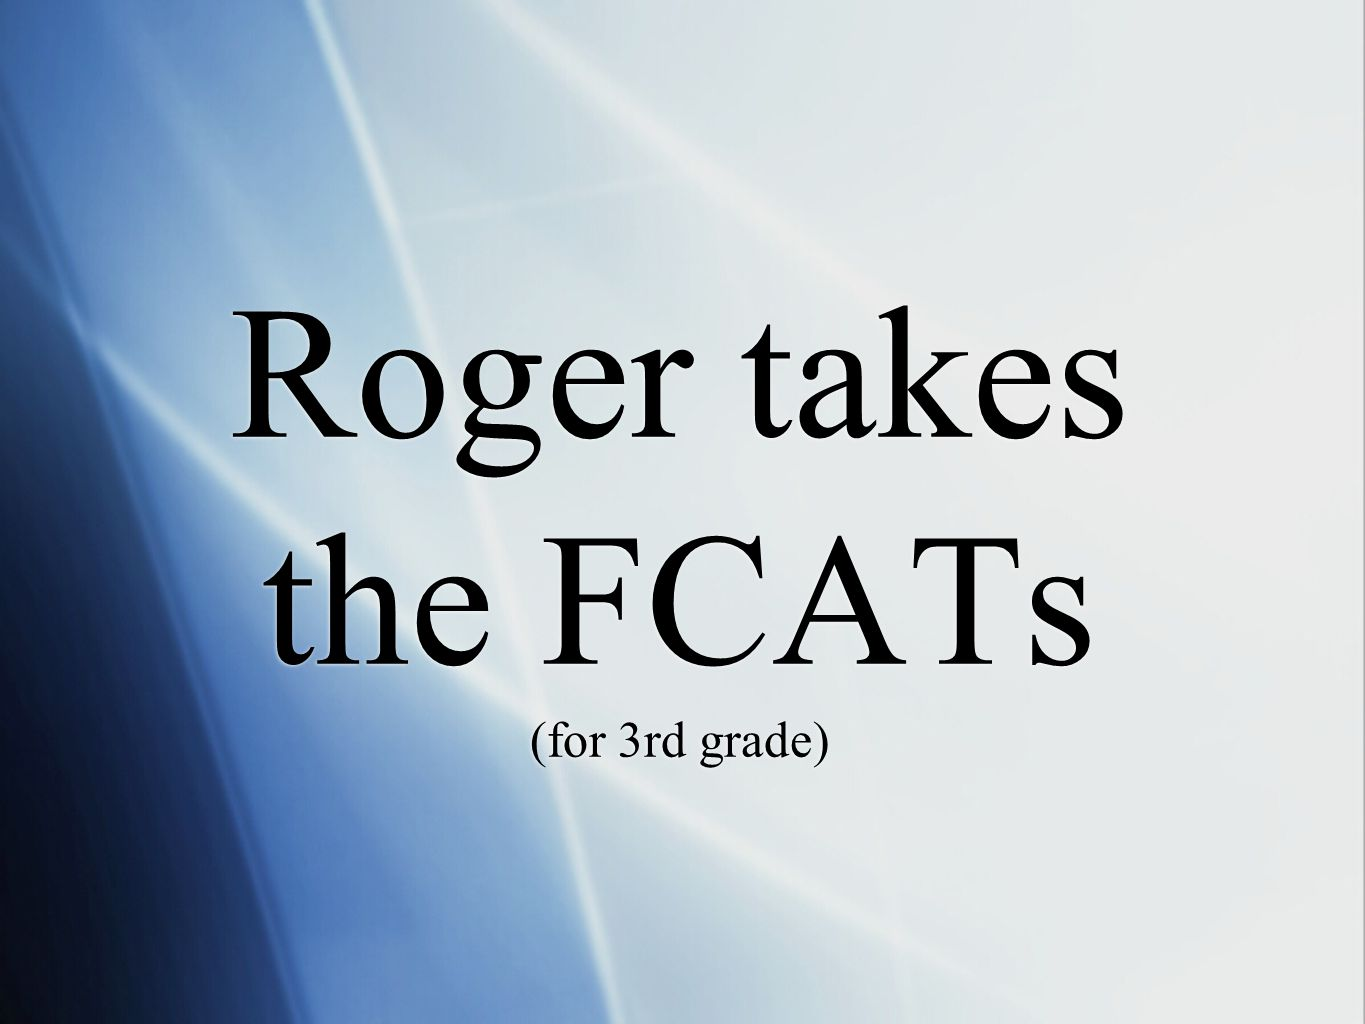 Roger takes the FCATs (for 3rd grade)